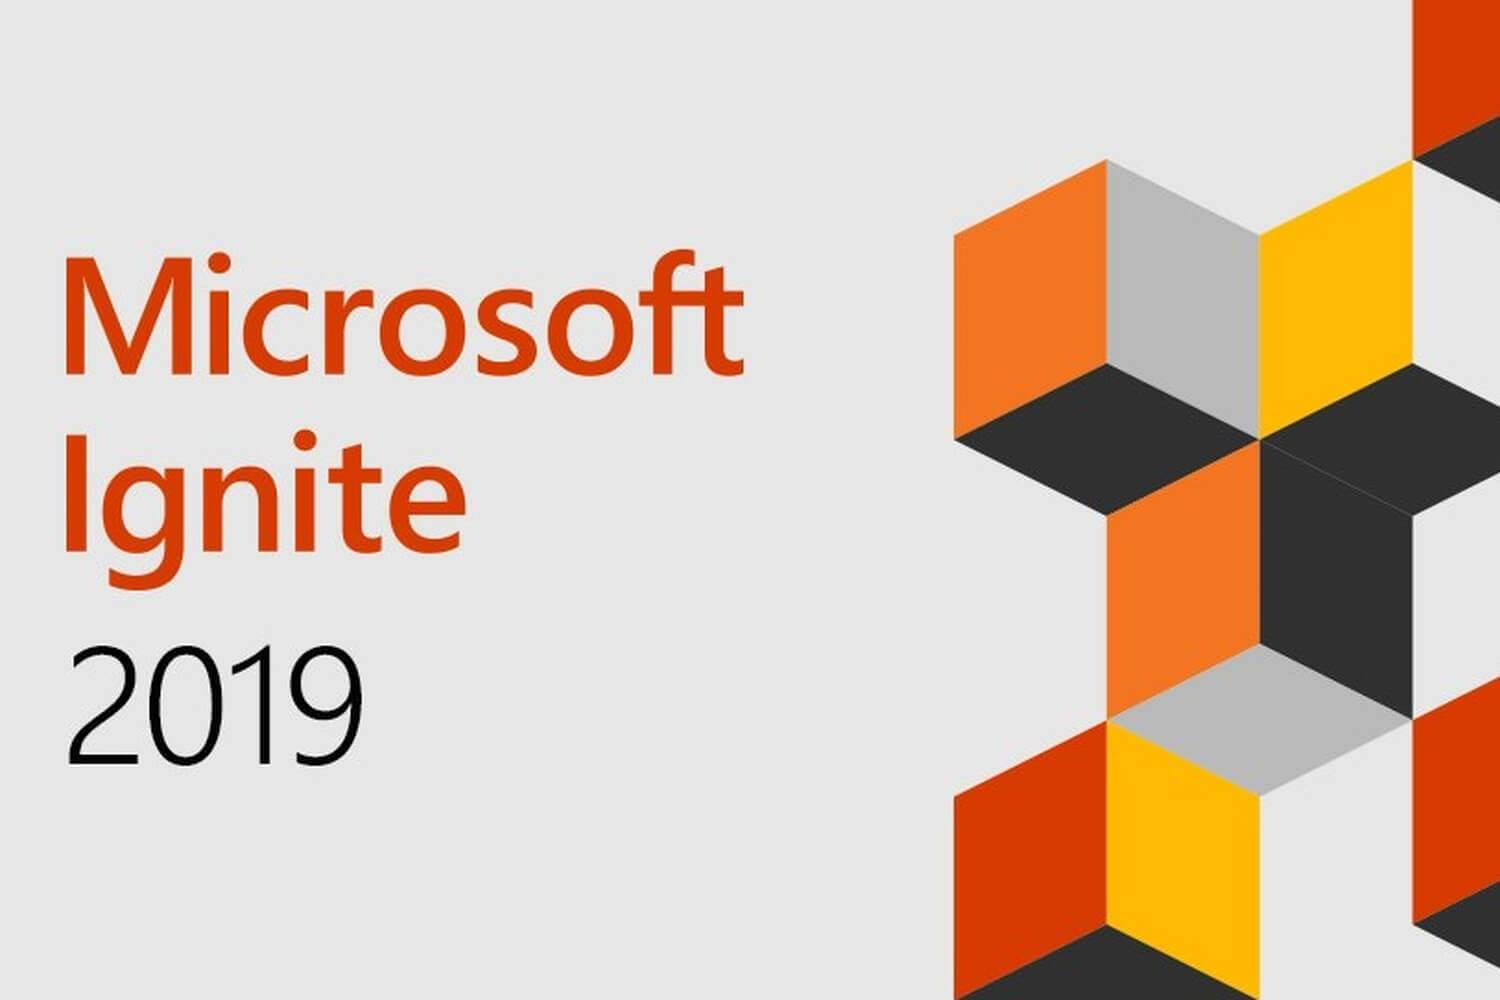 Download all Microsoft Ignite 2019 slide decks and videos with script